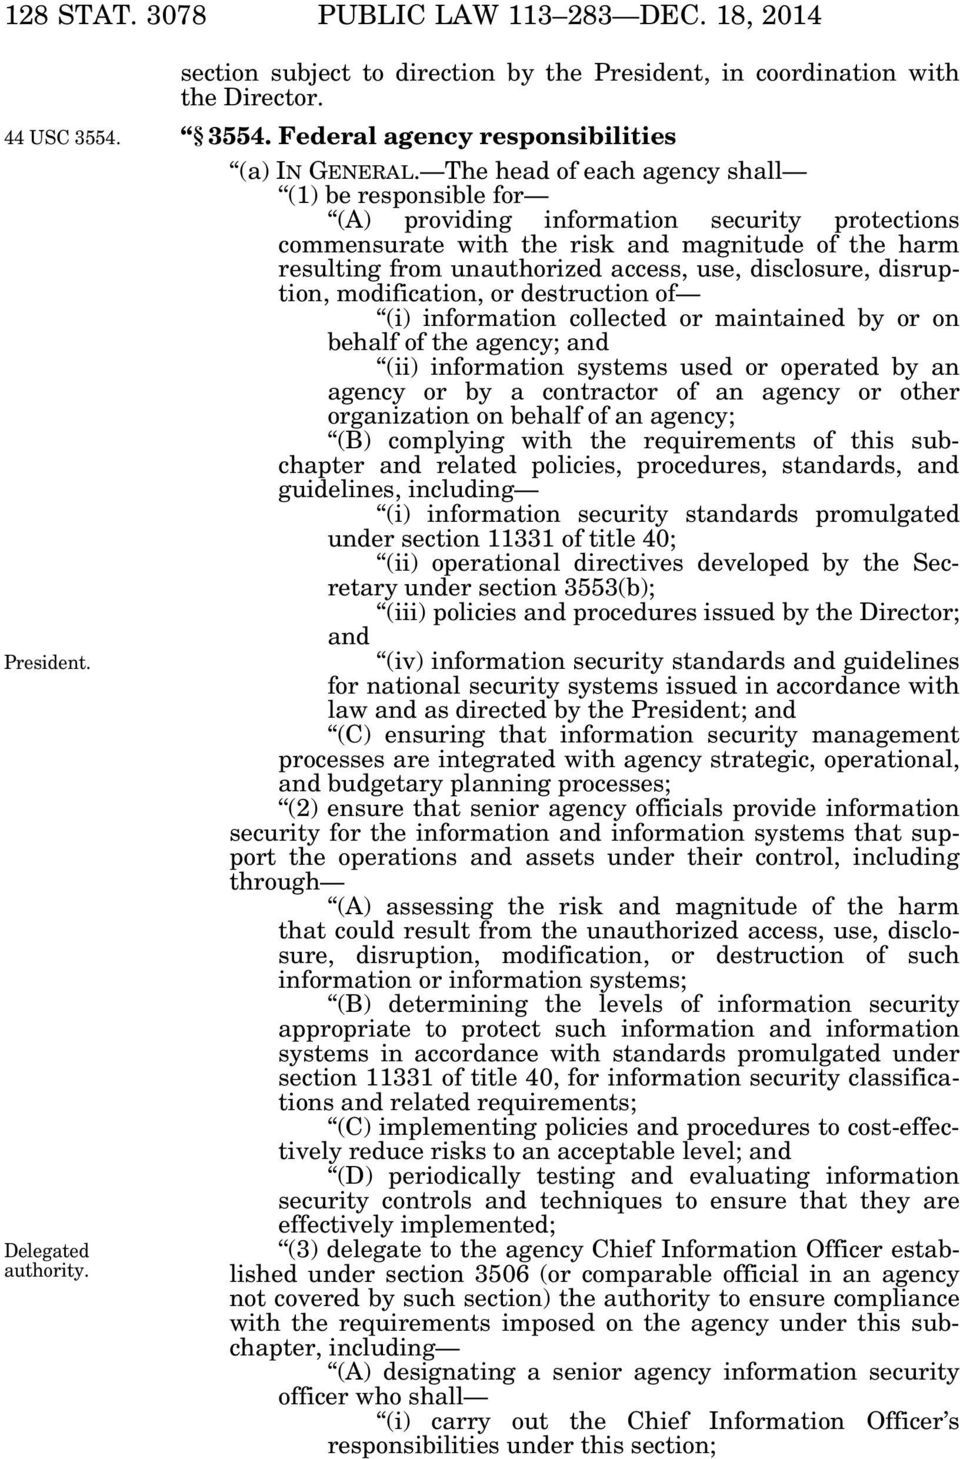 disclosure, disruption, modification, or destruction of (i) information collected or maintained by or on behalf of the agency; (ii) information systems used or operated by an agency or by a